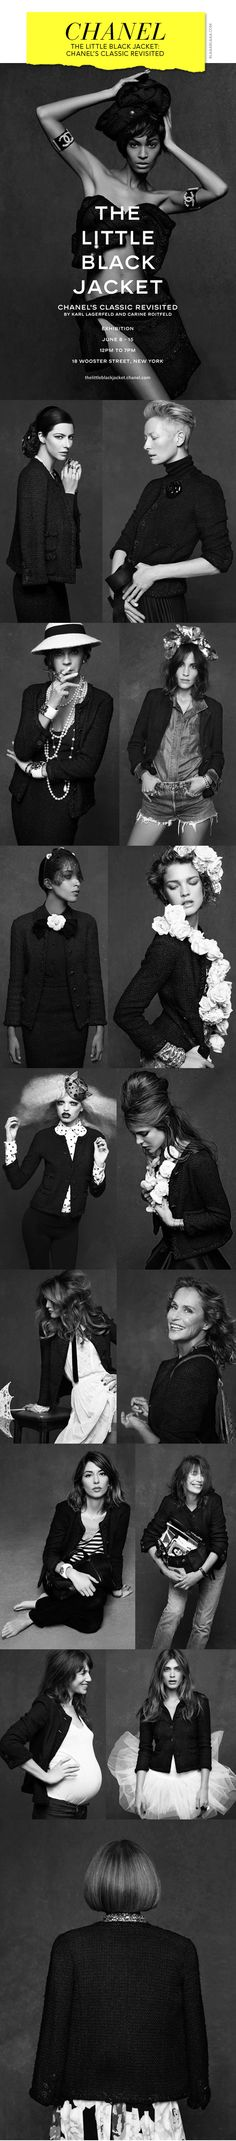 The Little Black Jacket: Chanel's Classic Revisited, by Karl Lagerfeld and Carine Roitfeld